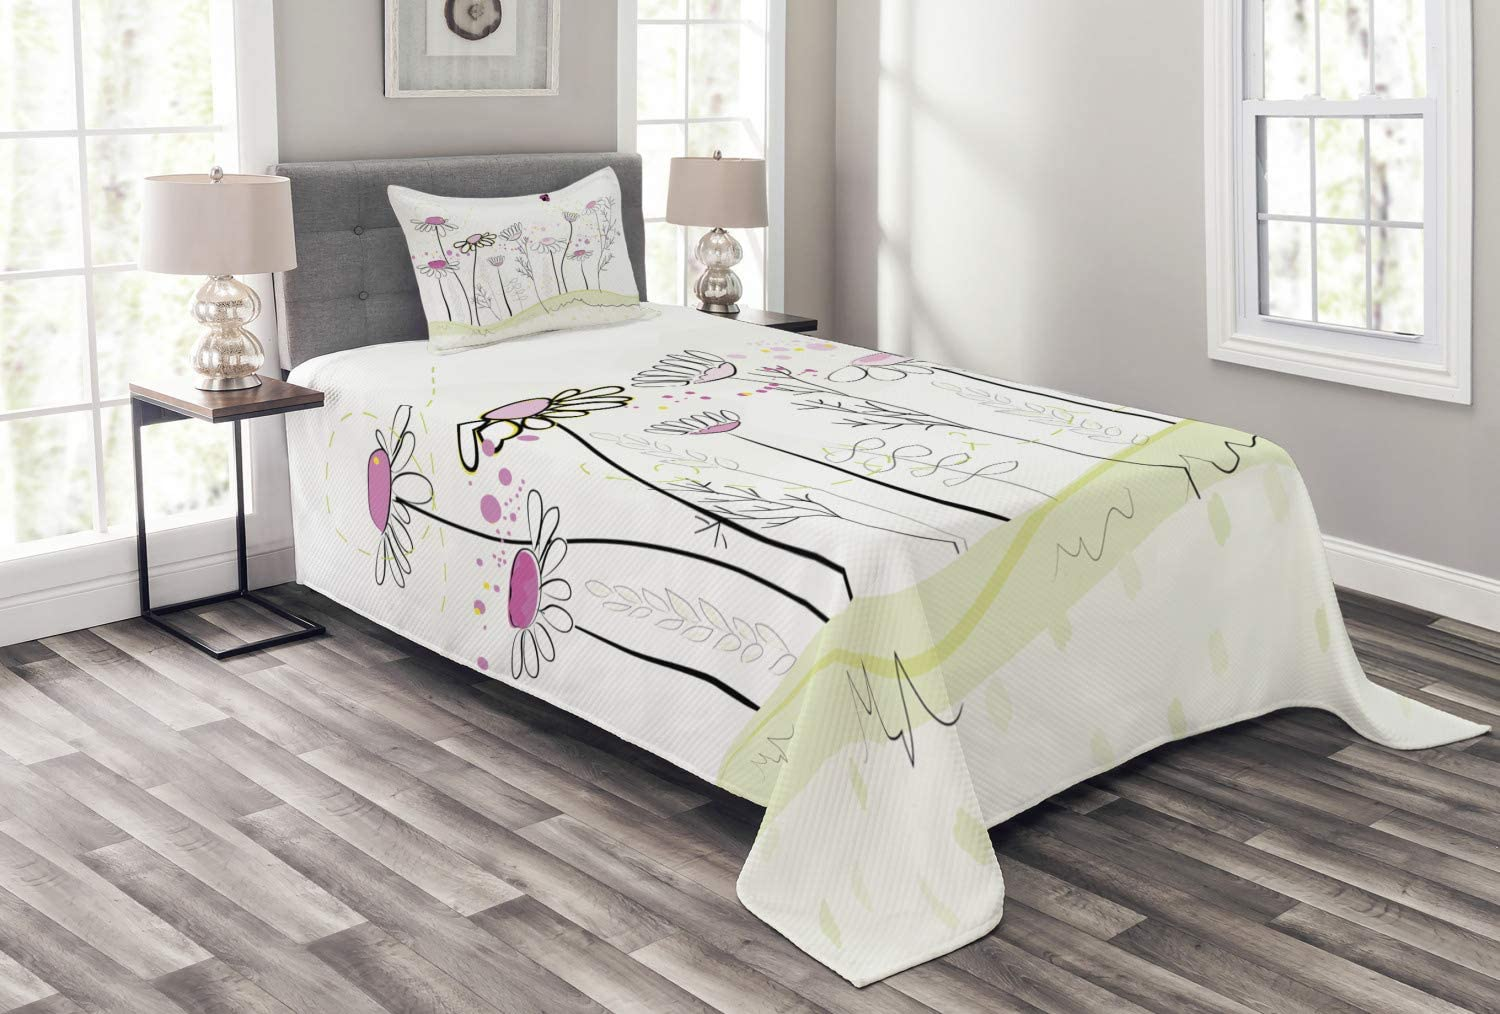 Lunarable Nature Cheap mail order sales Portland Mall Bedspread Flowerbed Spring with Chamomiles Han